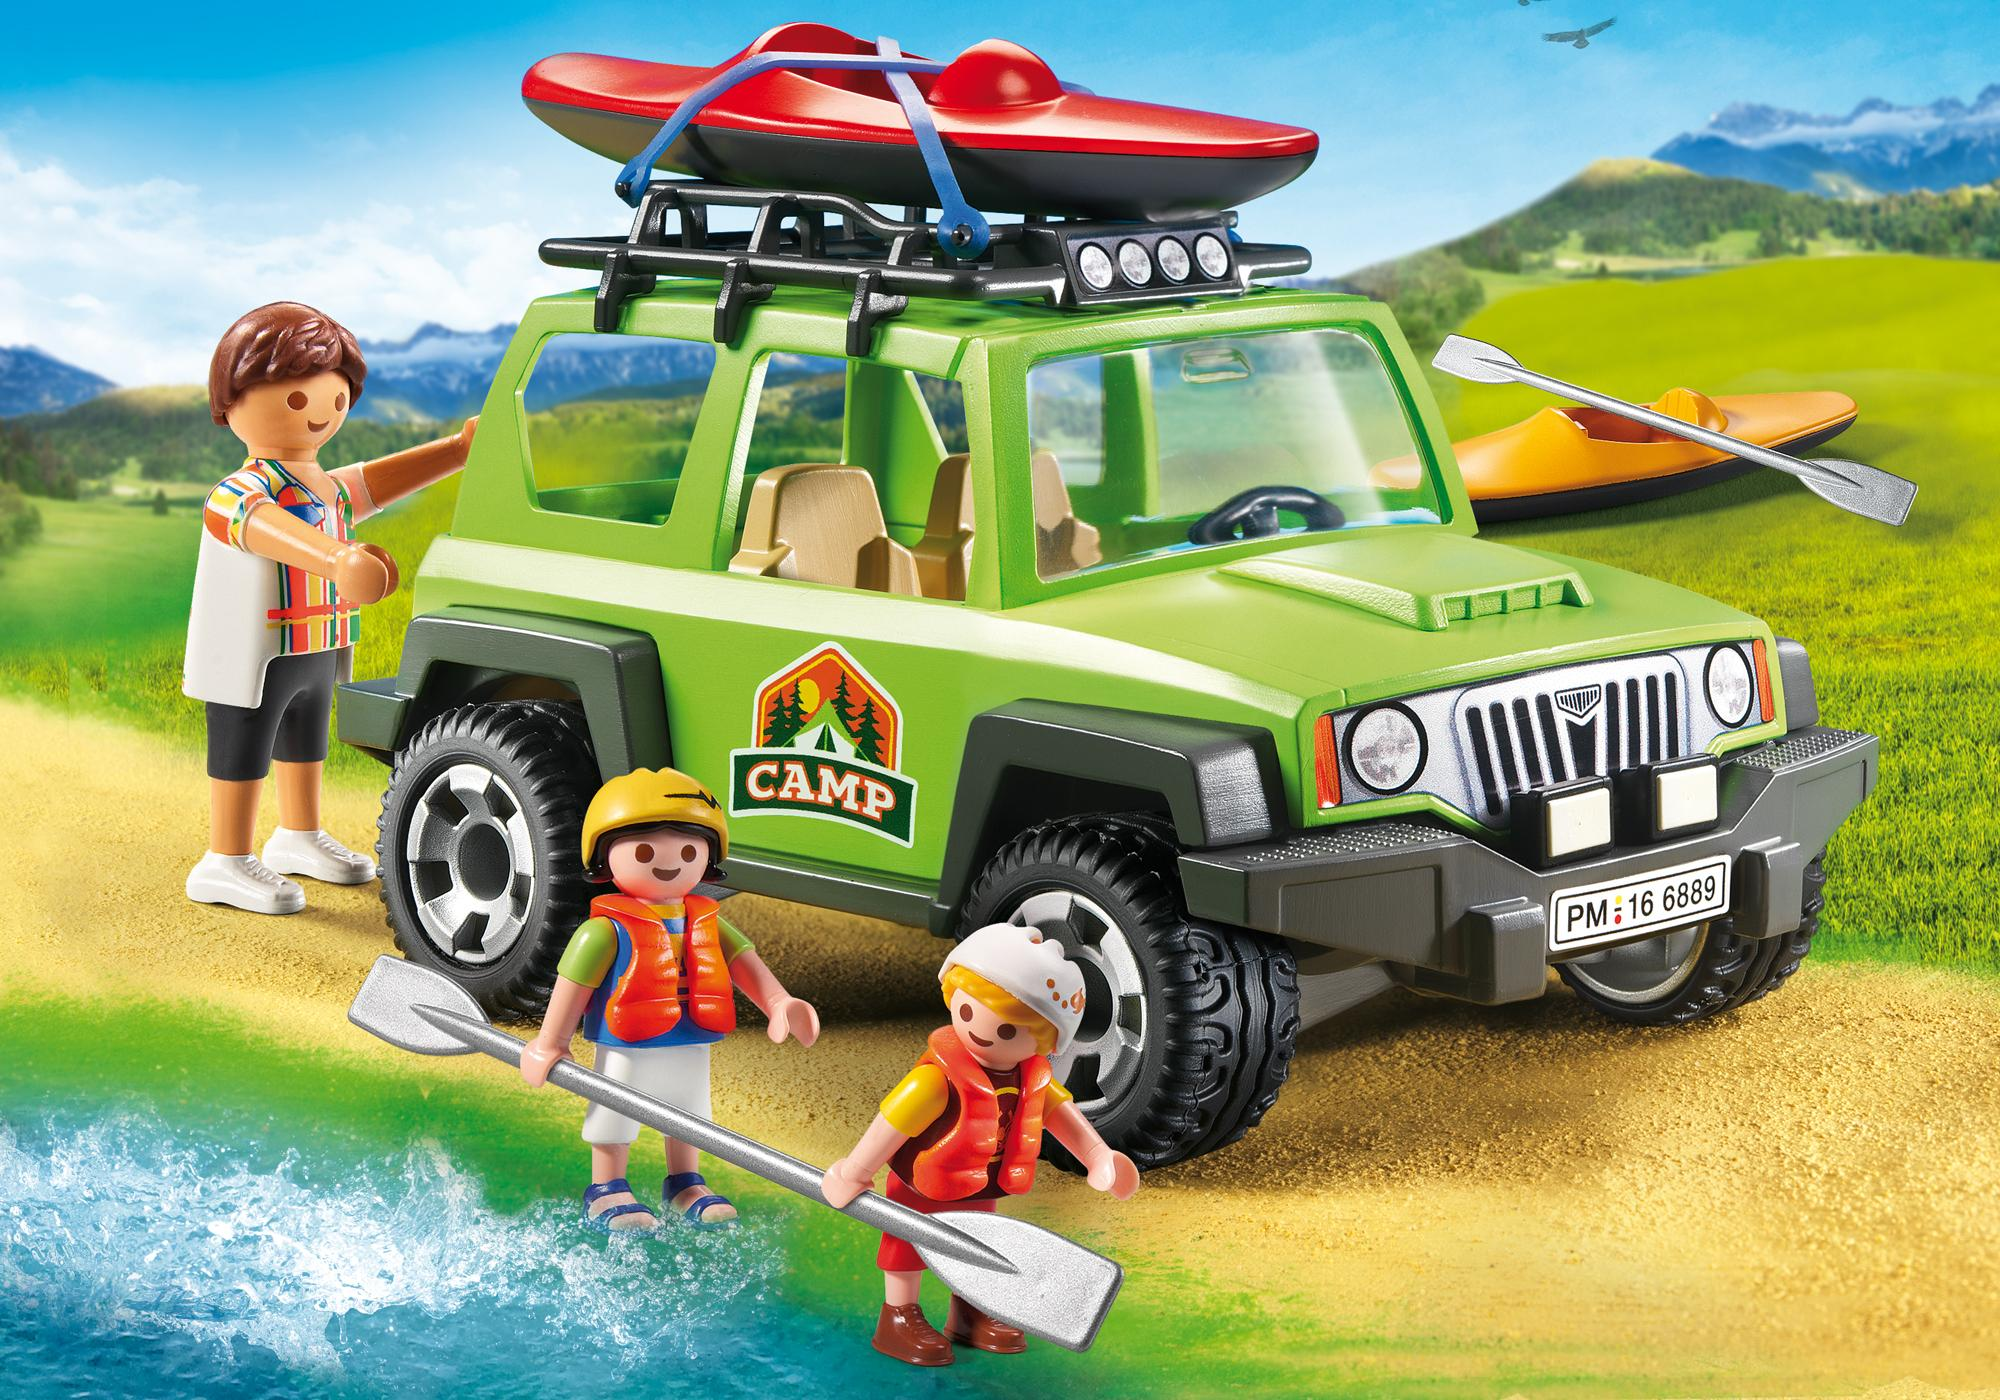 http://media.playmobil.com/i/playmobil/6889_product_detail